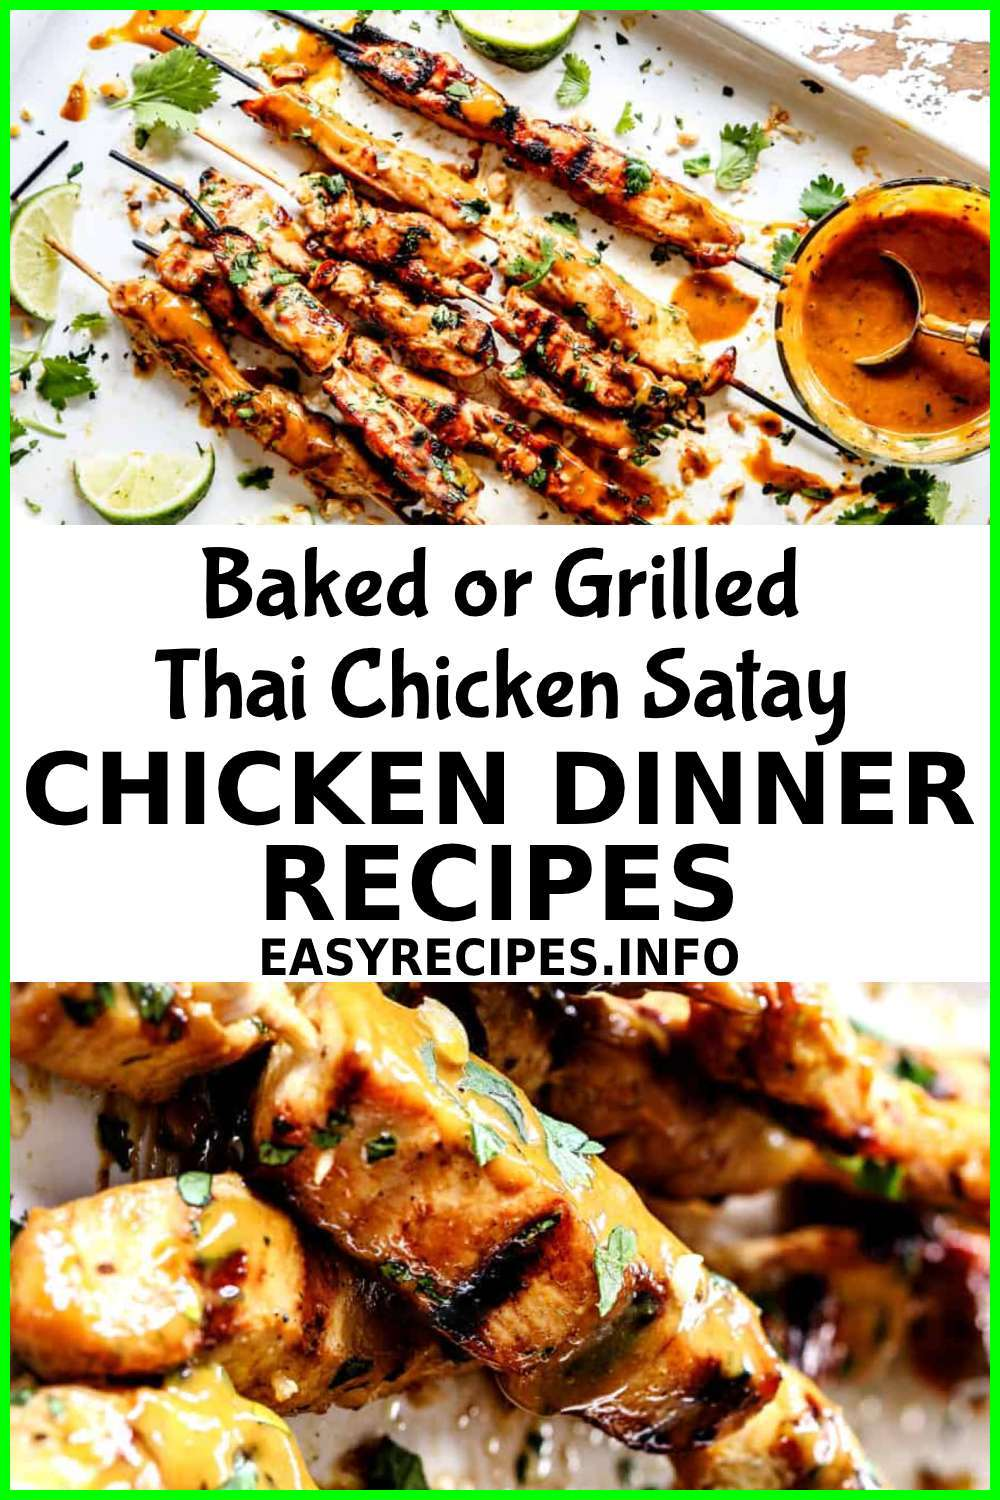 chicken dinner recipes, chicken for dinner recipes, chicken dinner recipes easy, chicken dinner recipes healthy, chicken dinner recipes quick, chicken breast dinner recipes easy, quarter chicken dinner recipes, chicken recipes healthy, chicken recipes that are healthy, healthy chicken recipes in crock pot, chicken recipes crockpot healthy, chicken recipes healthy crock pot, chicken recipes healthy baked, chicken recipes healthy easy, chicken dinner recipes easy, chicken dinner recipes healthy, chicken dinner recipes for family, keto chicken dinner recipes, chicken dinner recipes quick, baked chicken dinner recipes, quick and easy chicken dinner recipes, chicken dinner recipes crockpot, buffalo chicken dinner recipes, chicken dinner recipes instant pot, delicious chicken dinner recipes, chicken dinner recipes easy 4 ingredients, best chicken dinner recipes, chicken dinner recipes healthy clean eating, chicken dinner recipes easy healthy, chicken dinner recipes videos, shredded chicken dinner recipes, grilled chicken dinner recipes, low carb chicken dinner recipes, chicken dinner recipes pasta, simple chicken dinner recipes, canned chicken dinner recipes, ground chicken dinner recipes, chicken dinner recipes healthy baked, chicken dinner recipes healthy low carb, frozen chicken dinner recipes, chicken dinner recipes for two, chicken dinner recipes casserole, paleo chicken dinner recipes, stuffed chicken dinner recipes, non chicken dinner recipes, chicken dinner recipes easy baked, mexican chicken dinner recipes, gluten free chicken dinner recipes, creamy chicken dinner recipes, asian chicken dinner recipes, chicken dinner recipes dairy free, whole chicken dinner recipes, fancy chicken dinner recipes, lemon chicken dinner recipes, ww chicken dinner recipes, low calorie chicken dinner recipes, fast chicken dinner recipes, summer chicken dinner recipes, boneless chicken dinner recipes, chicken dinner recipes oven, instapot chicken dinner recipes, chicken dinner recipes quick weeknight meals, chicken dinner recipes for family comfort foods, bbq chicken dinner recipes, crispy chicken dinner recipes, italian chicken dinner recipes, cream of chicken dinner recipes, chicken dinner recipes easy kids, chicken dinner recipes air fryer, spicy chicken dinner recipes, chicken dinner recipes healthy clean eating low carb, chicken dinner recipes skillet, light chicken dinner recipes, breaded chicken dinner recipes, rotisserie chicken dinner recipes, chicken dinner recipes easy main dishes, chicken dinner recipes for family crock pot, chicken dinner recipes easy casserole, chicken dinner recipes healthy crockpot, chicken dinner recipes quick families, chicken dinner recipes healthy for two, chicken dinner recipes healthy families, fried chicken dinner recipes, chicken dinner recipes easy skillet